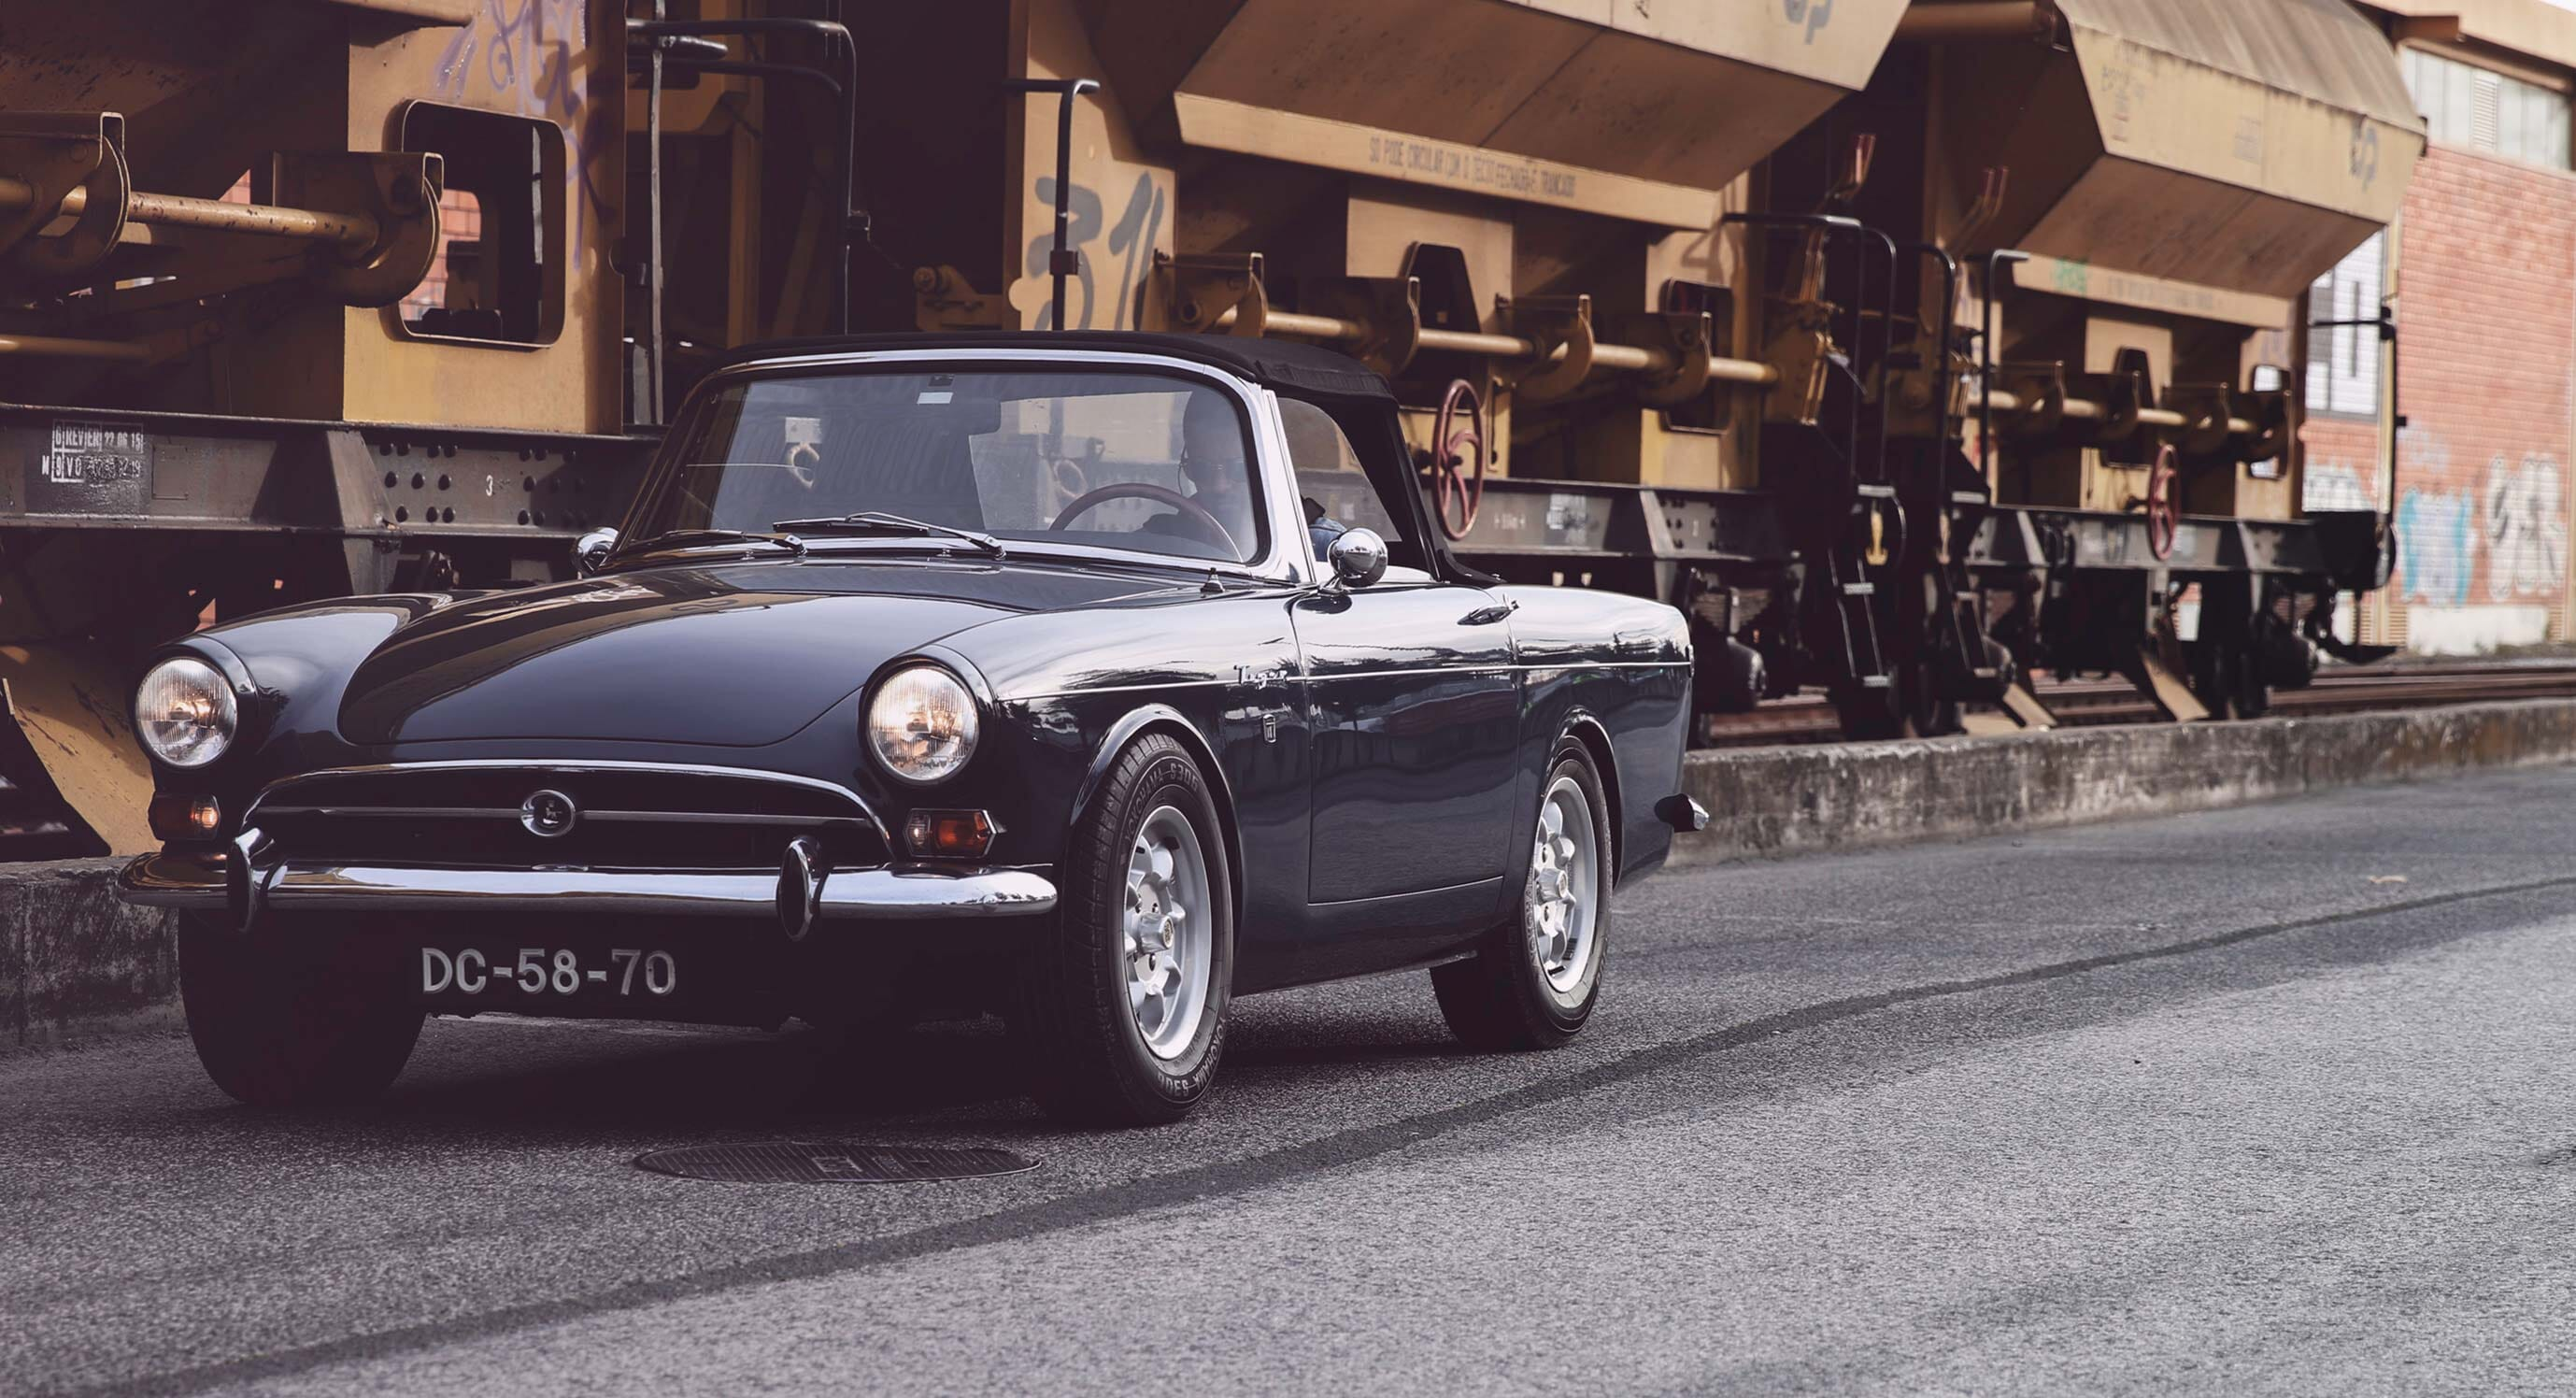 Timeless Garage Masterfully Update This 1966 Sunbeam Tiger